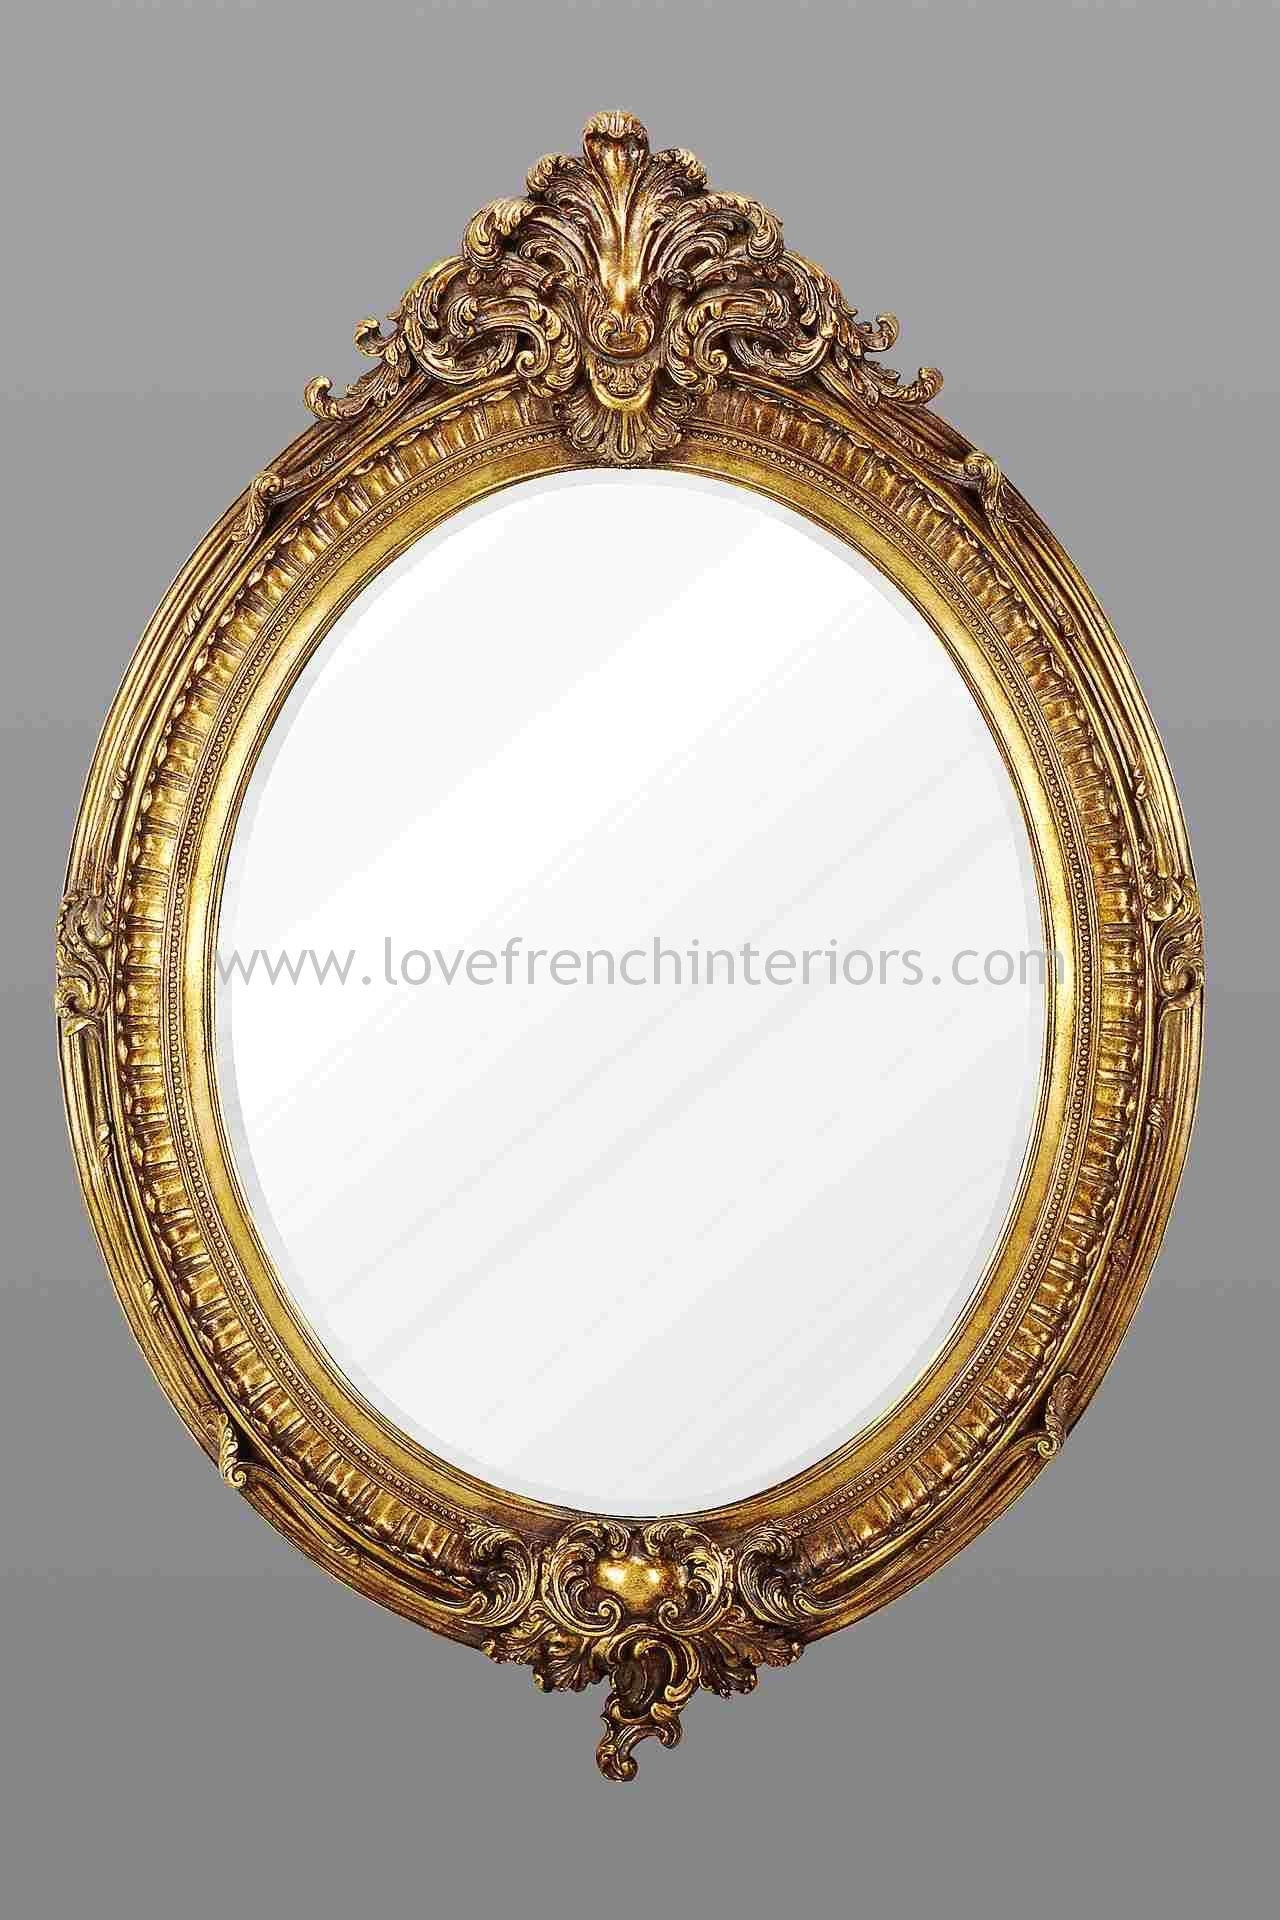 Gold Oval French Mirror Throughout Gold Oval Mirrors (Image 8 of 20)